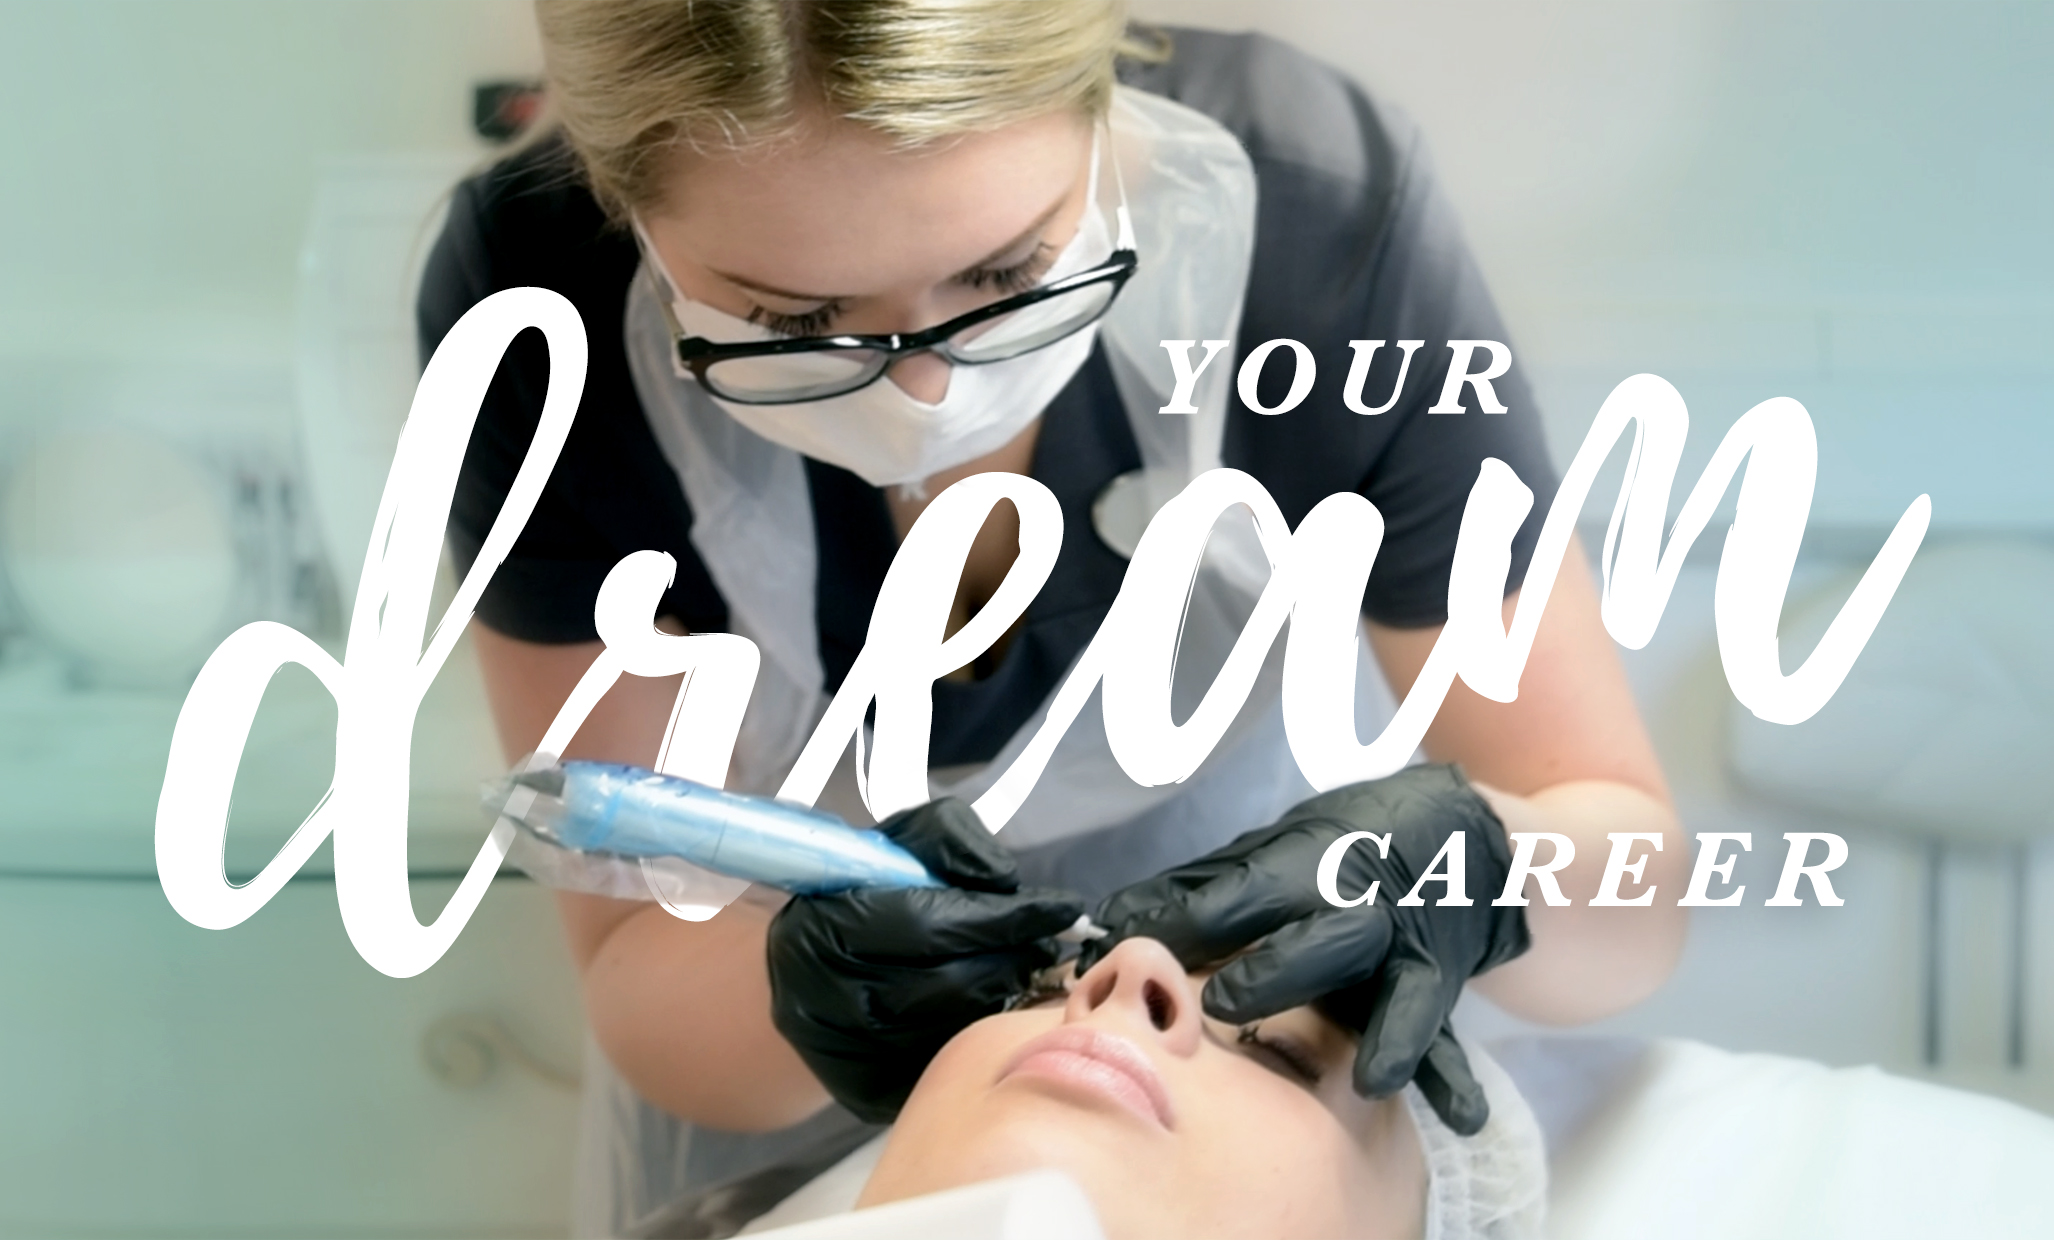 microblading-vs-permanent-makeup | kbpro